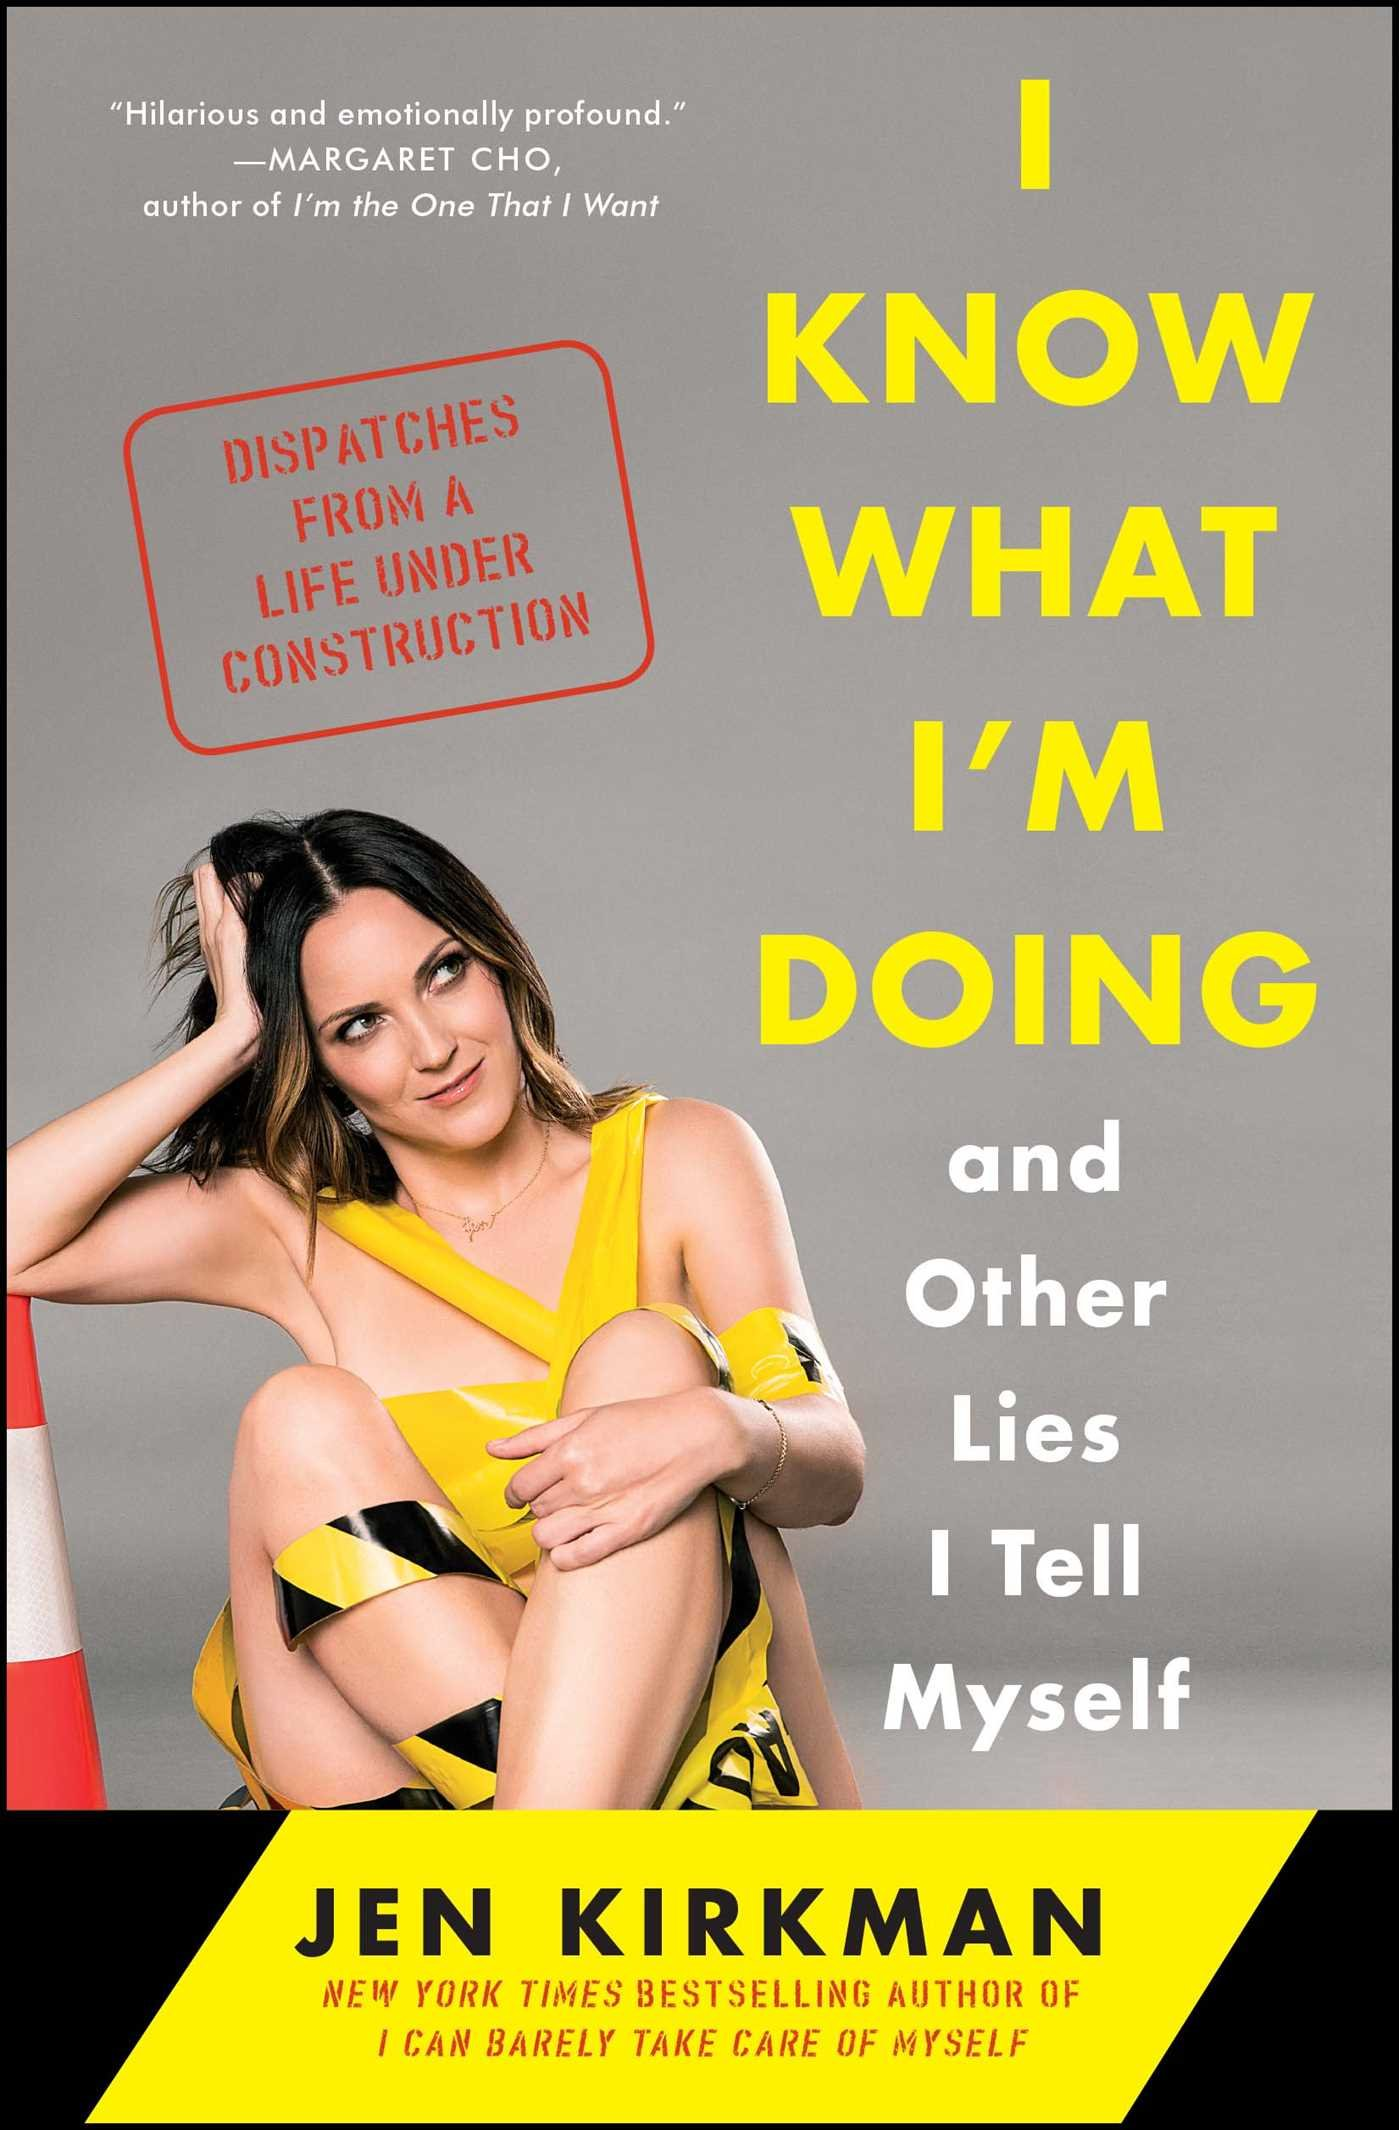 3. 'I Know What I'm Doing' by Jen Kirkman